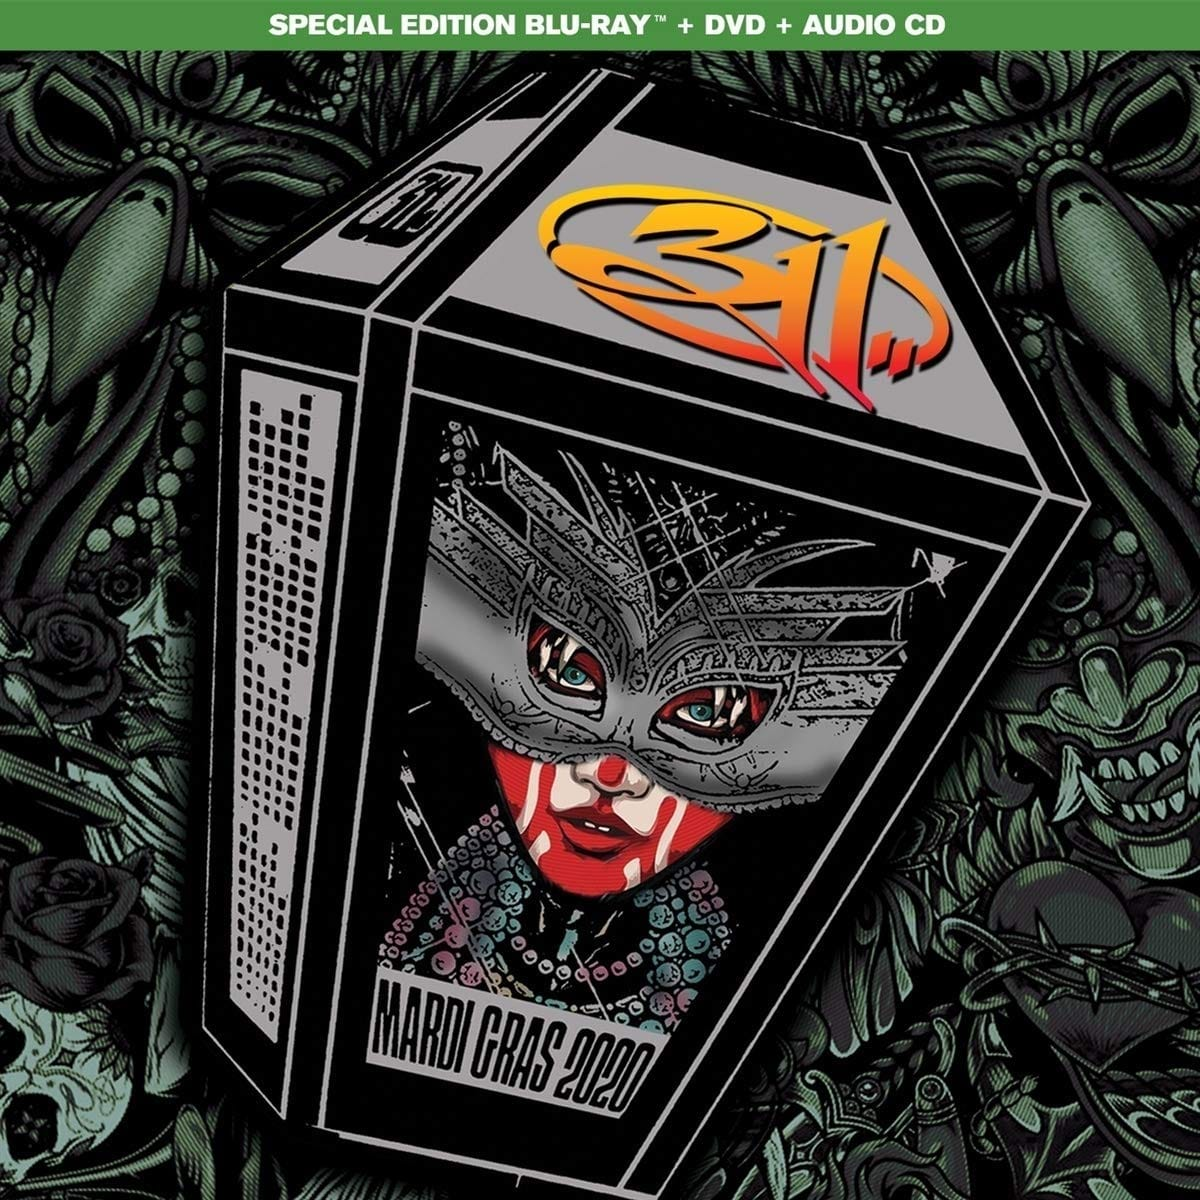 311 - Mardi Gras 2020 Live HD Concert Streaming FREE for Amazon Prime Members